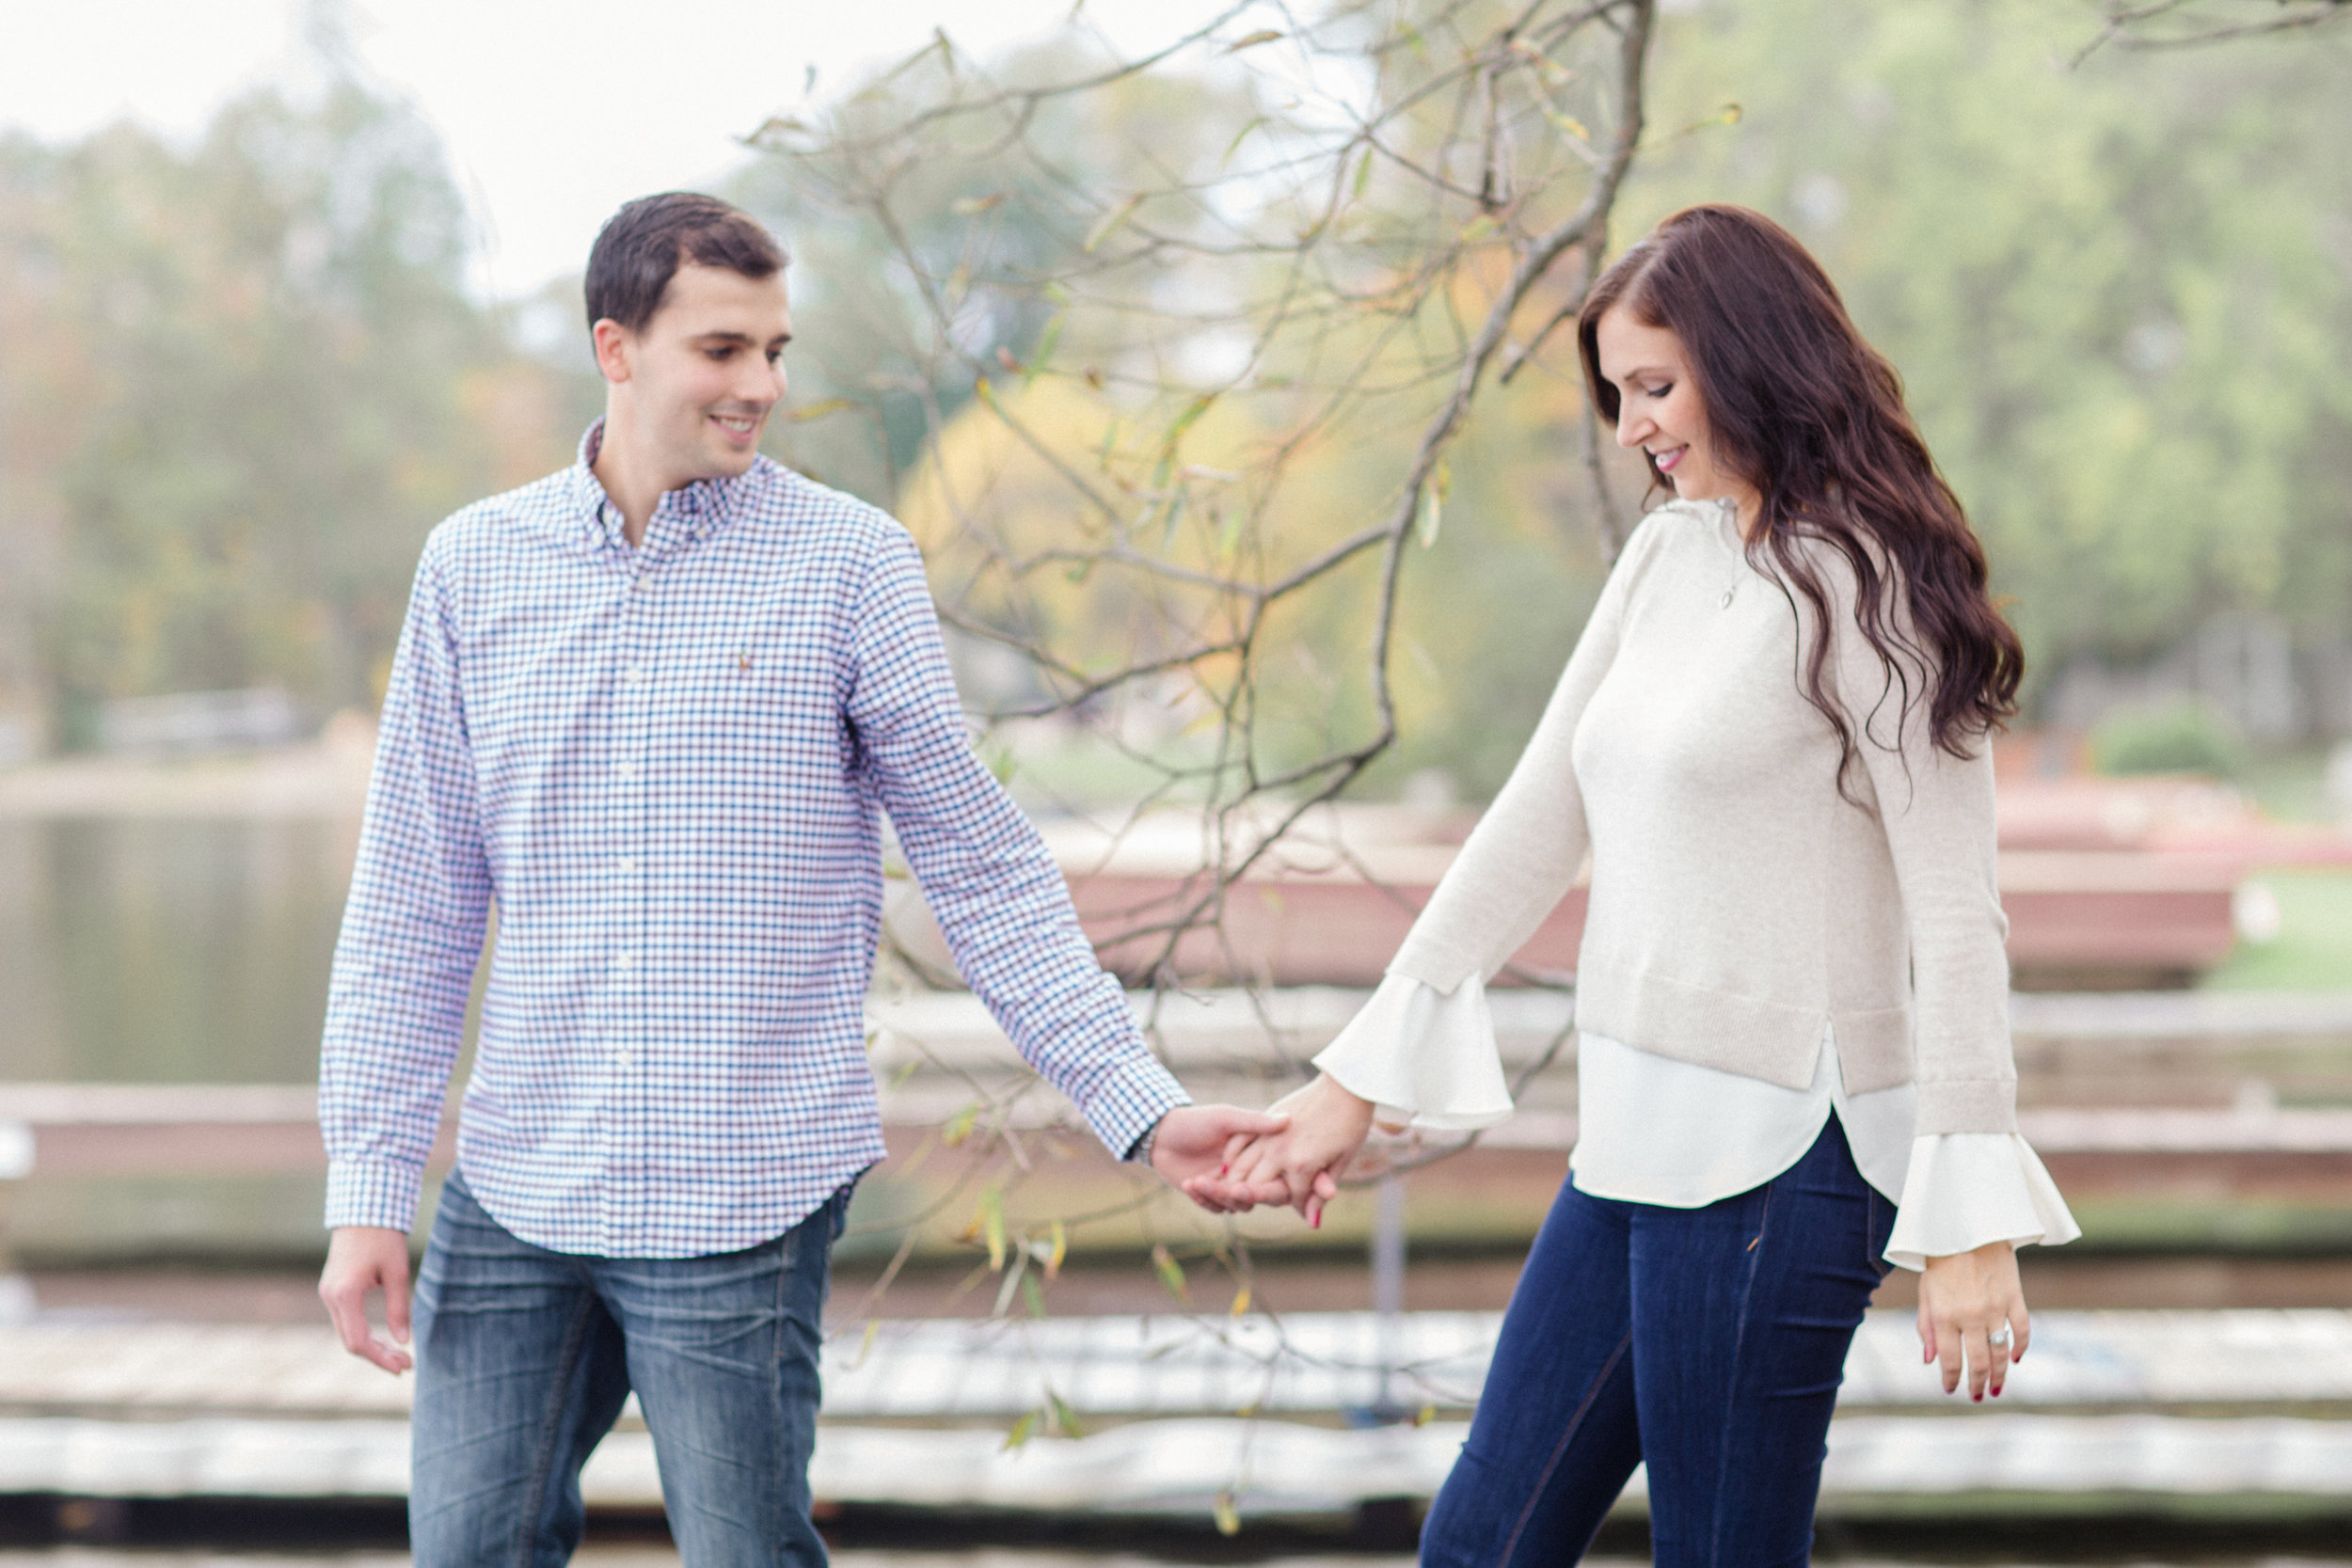 Fall engagement session at a lake in October